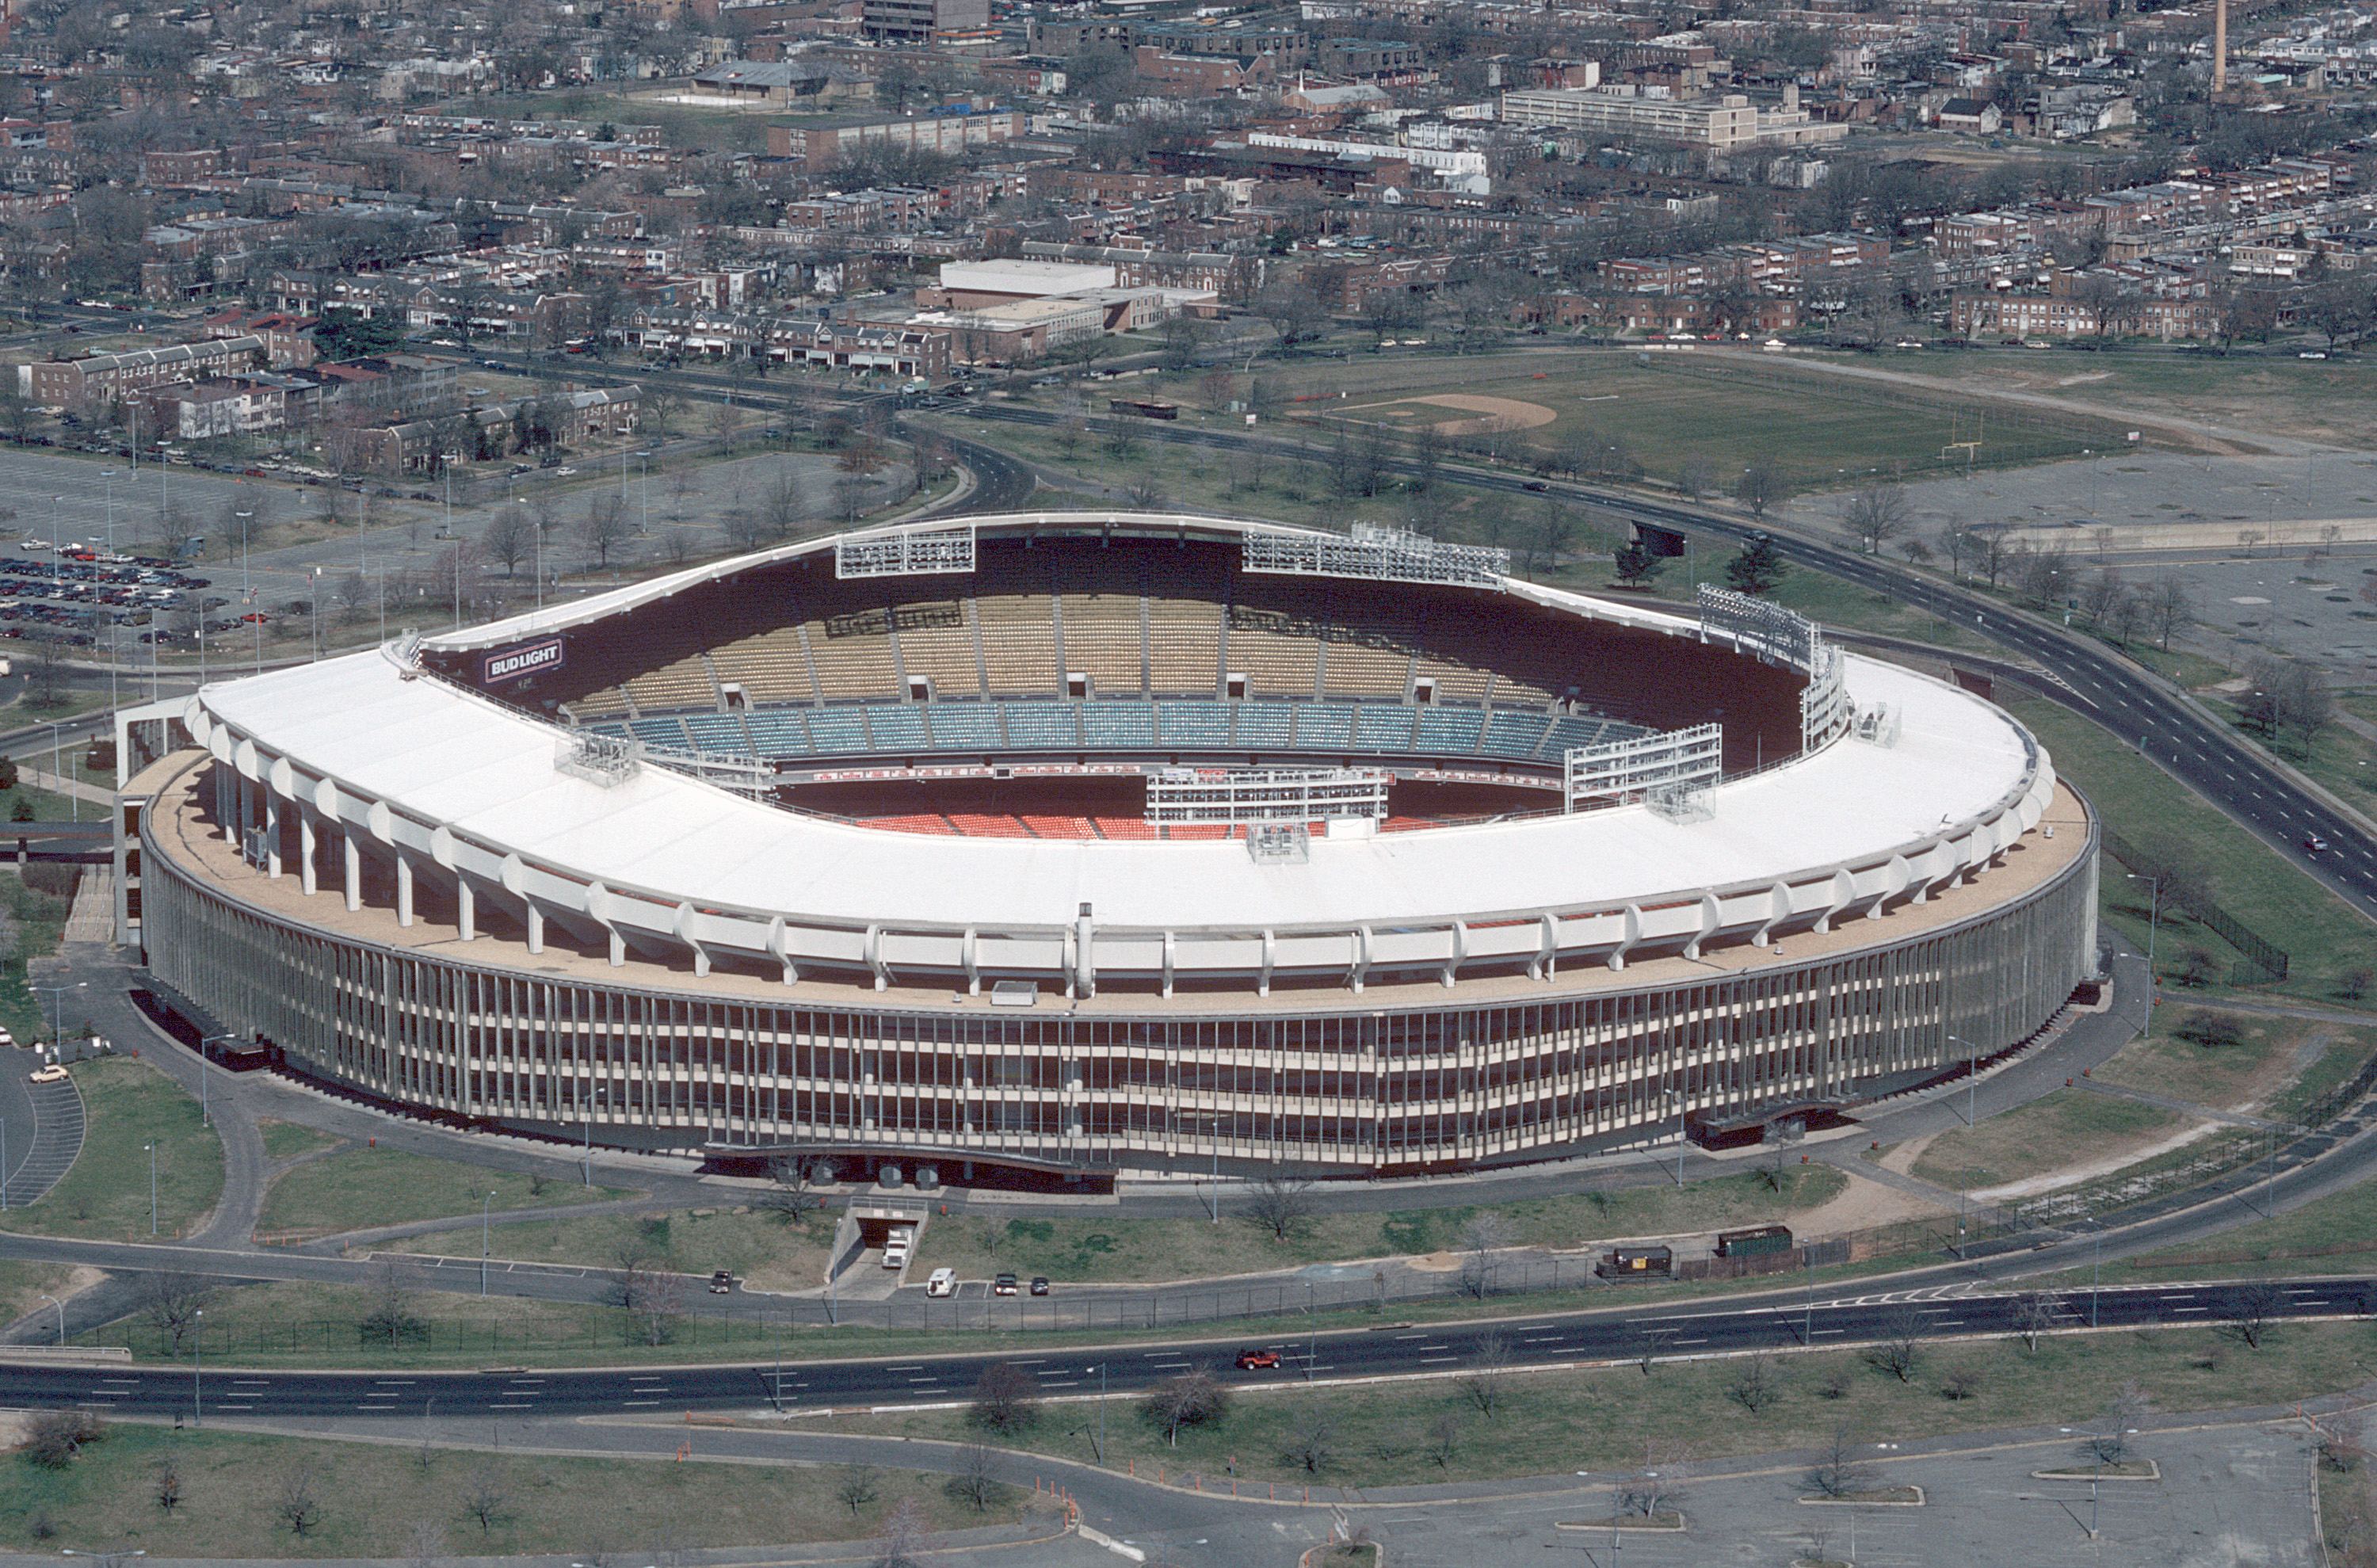 File Rfk Stadium Aerial Photo 1988 Jpeg Wikimedia Commons